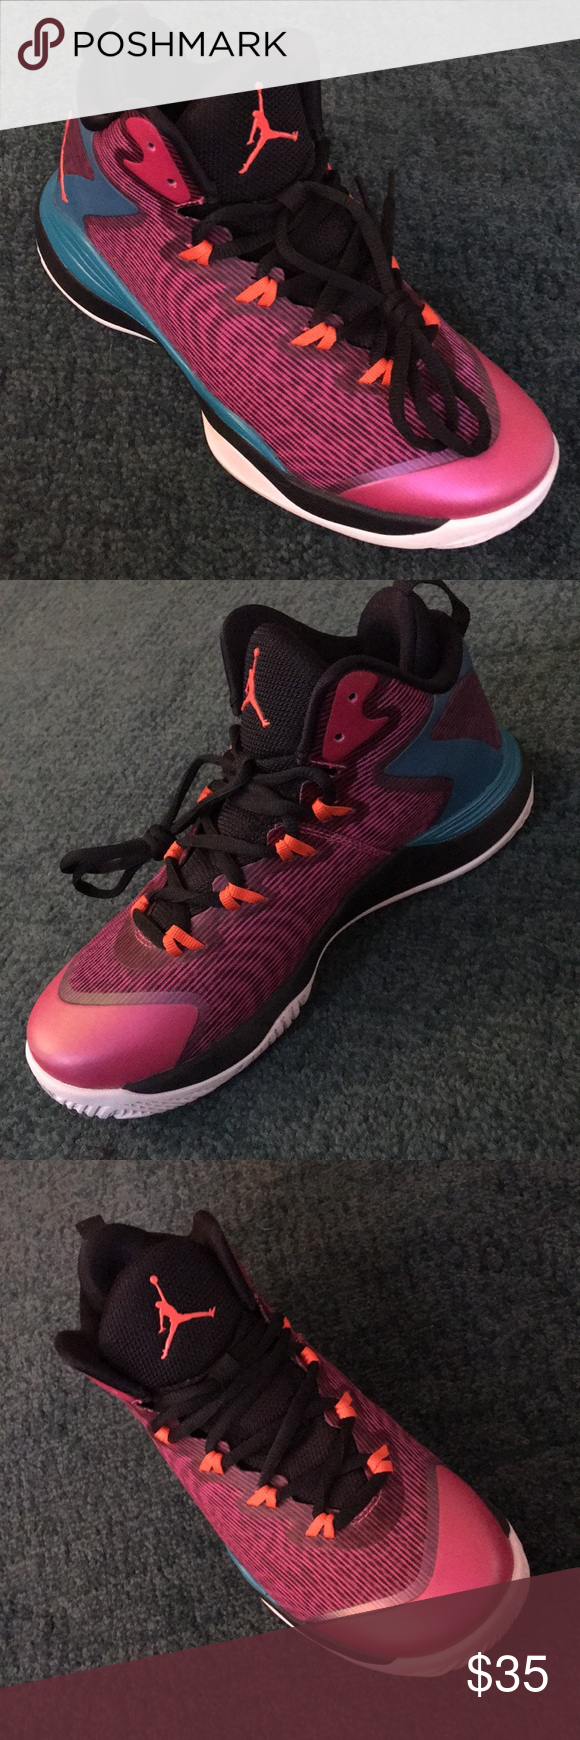 innovative design 22ae2 8e67c Nike Air Jordan Superfly 3 BG Youth Sneakers Size 4.5 Fits Women s Size 6 .